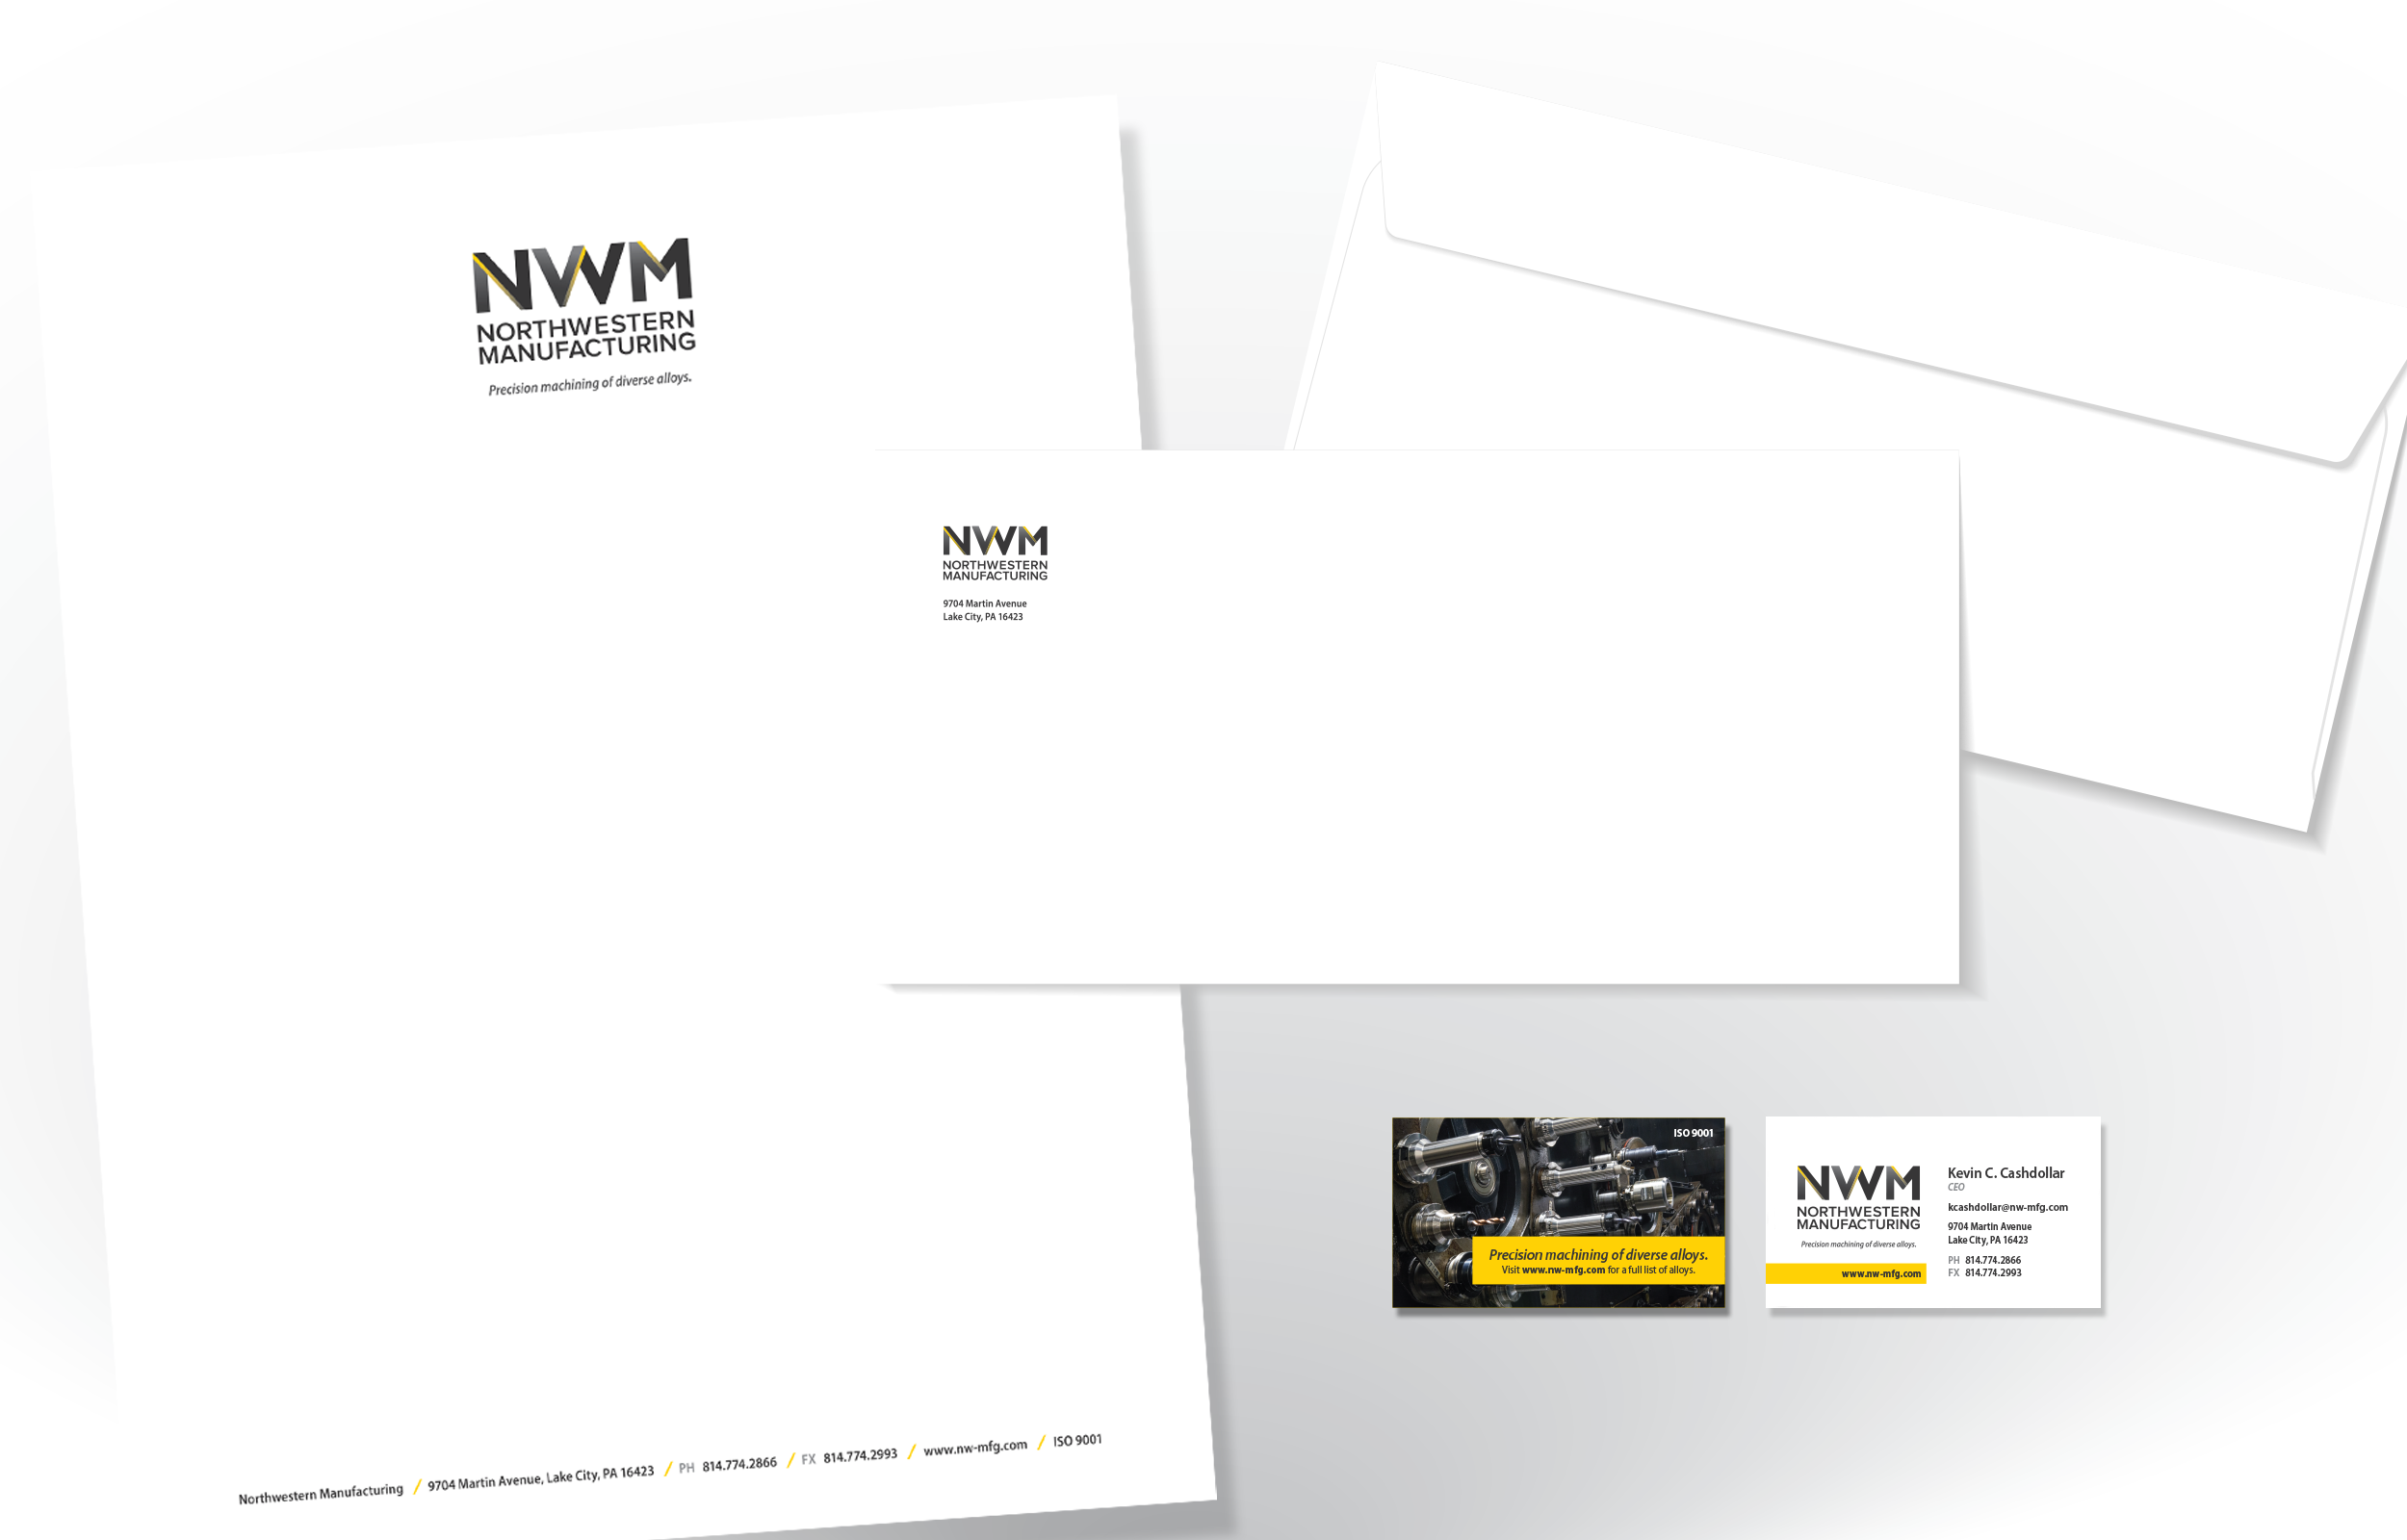 http://papaadvertising.com/wp-content/uploads/2016/11/NWM-stationary-1.png